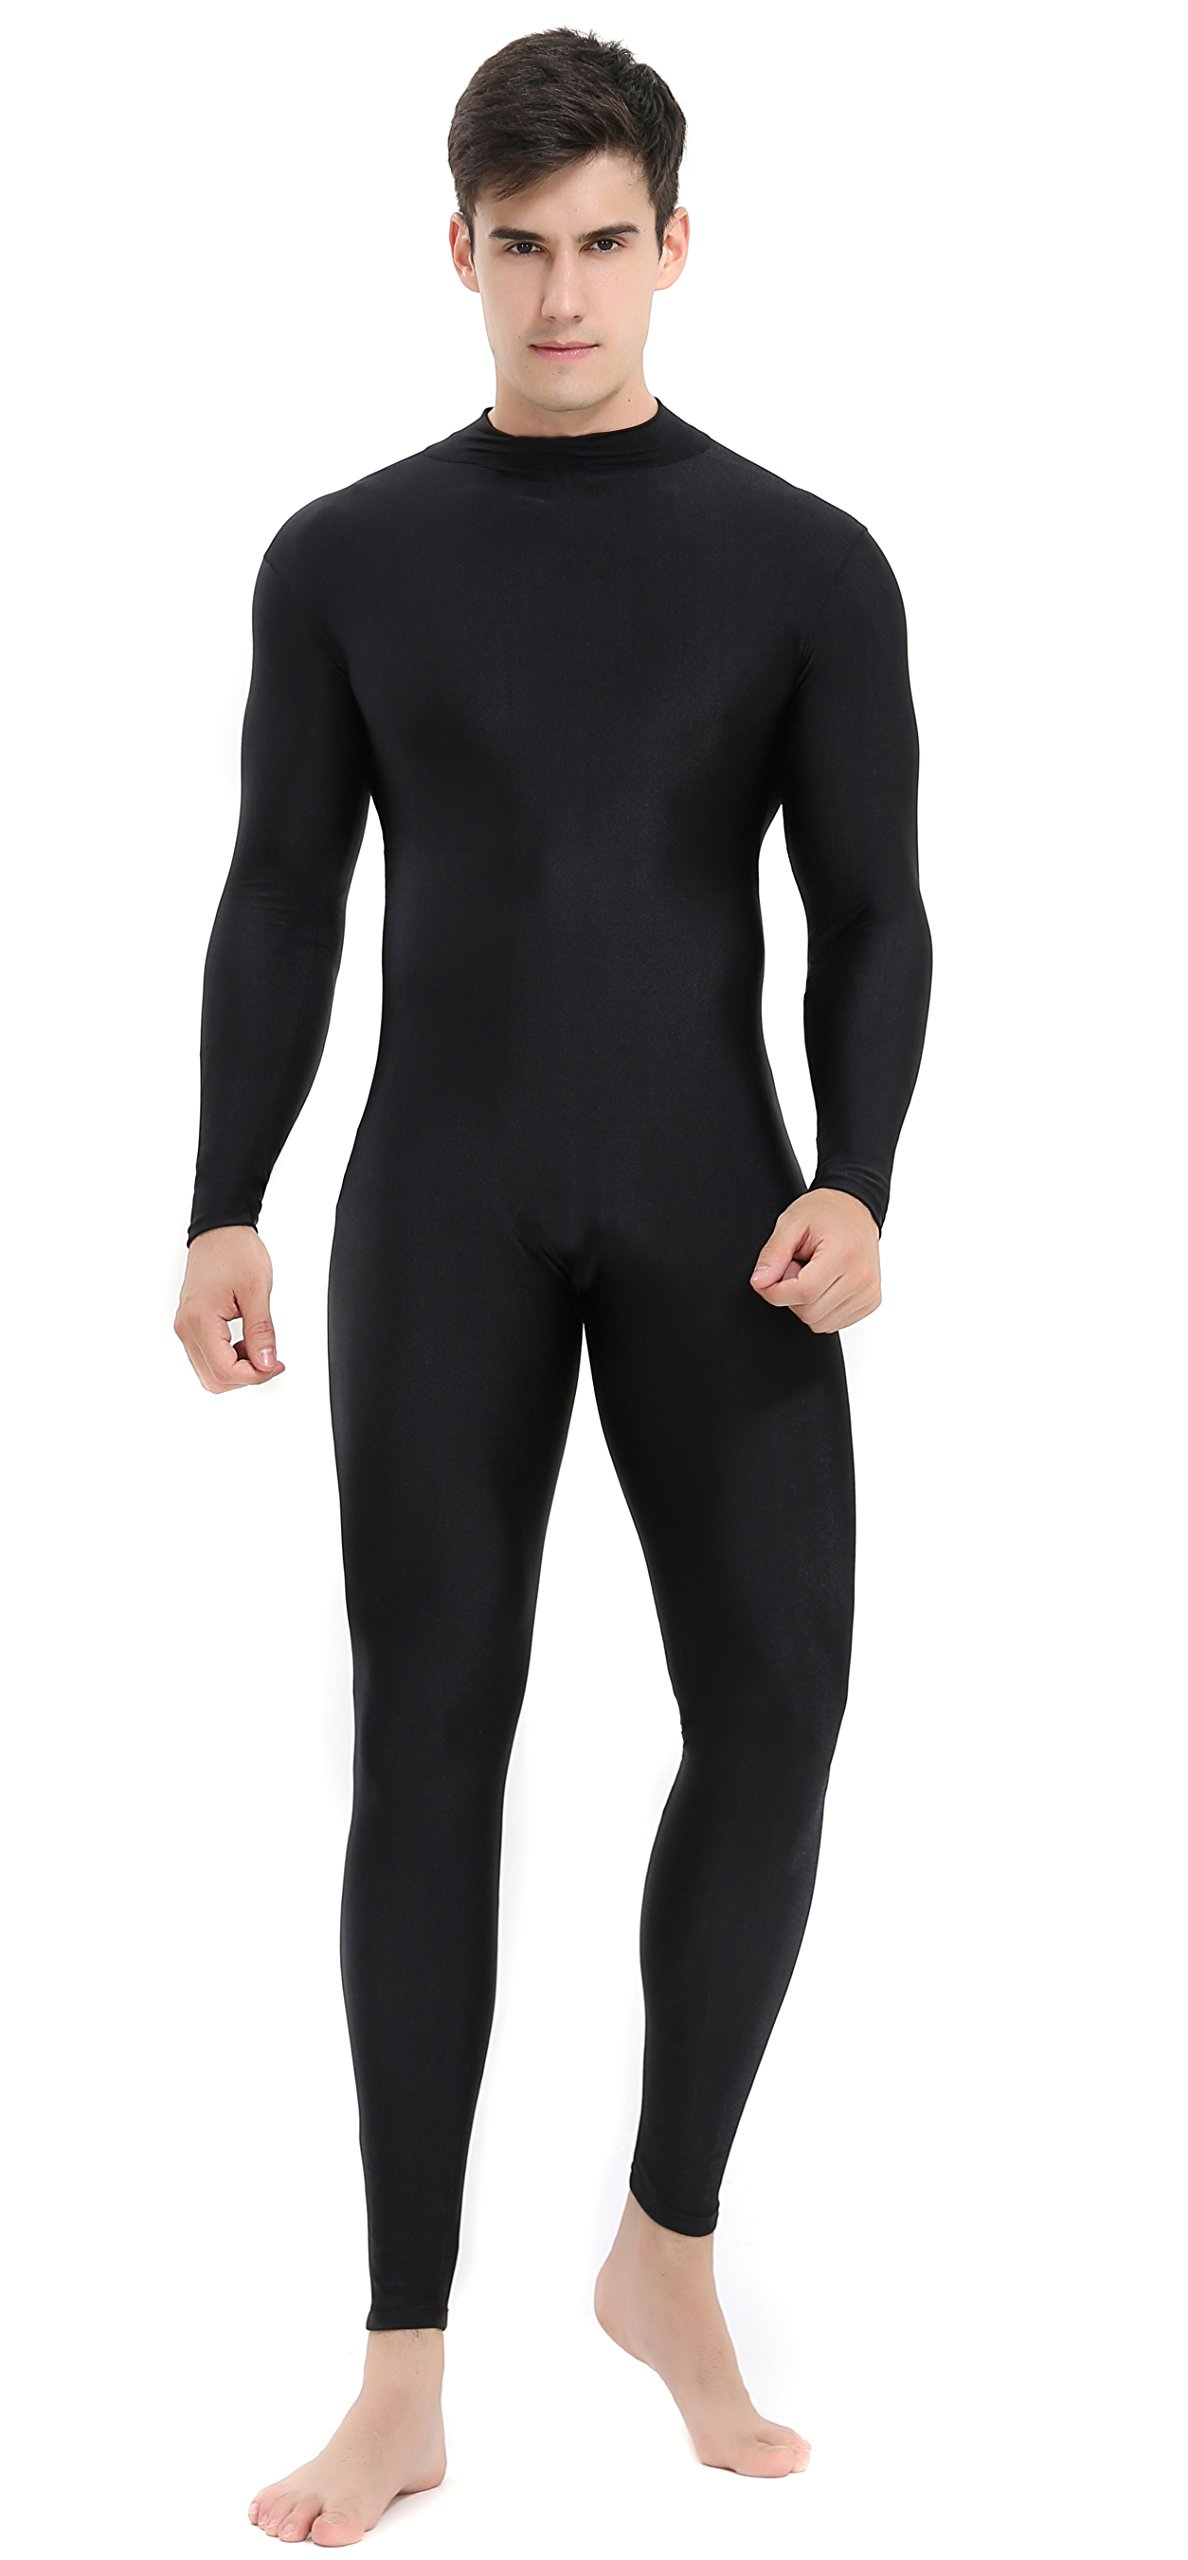 - 71sDjre M6L - Speerise Mens Turtleneck Spandex Long Sleeve Unitard Bodysuit Dancewear